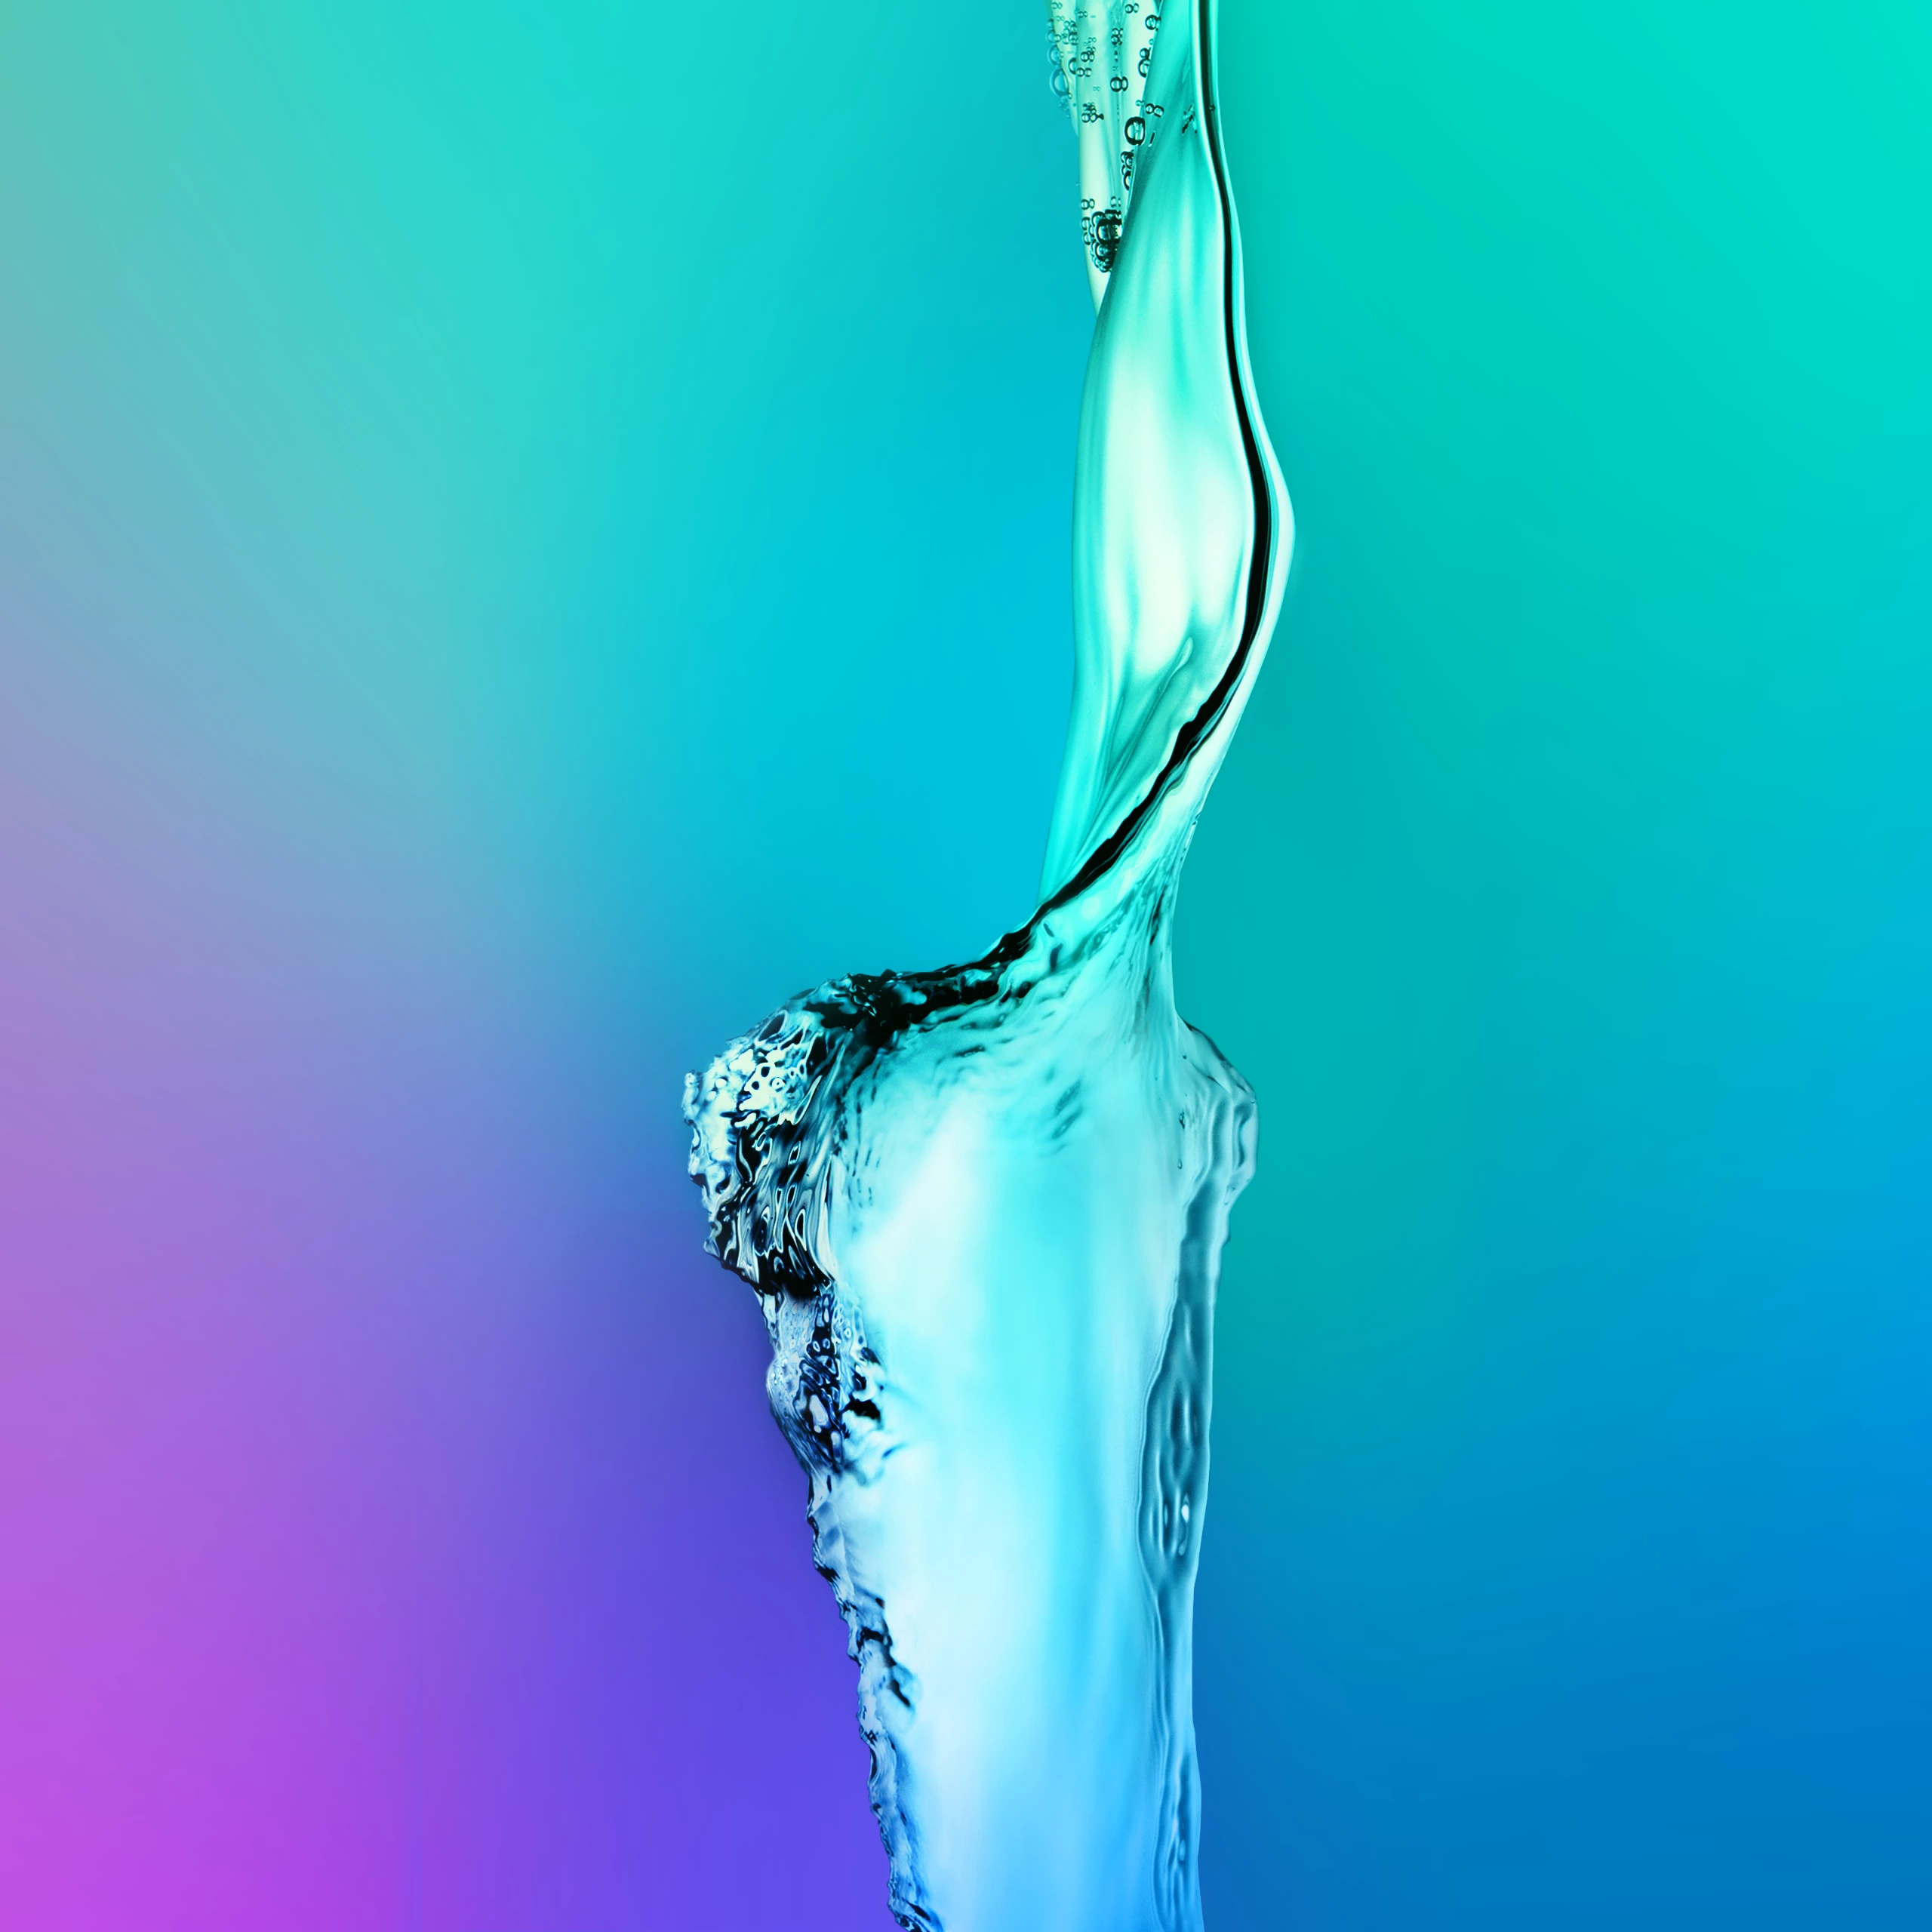 Galaxy-Note-5-Wallpapers-03-1